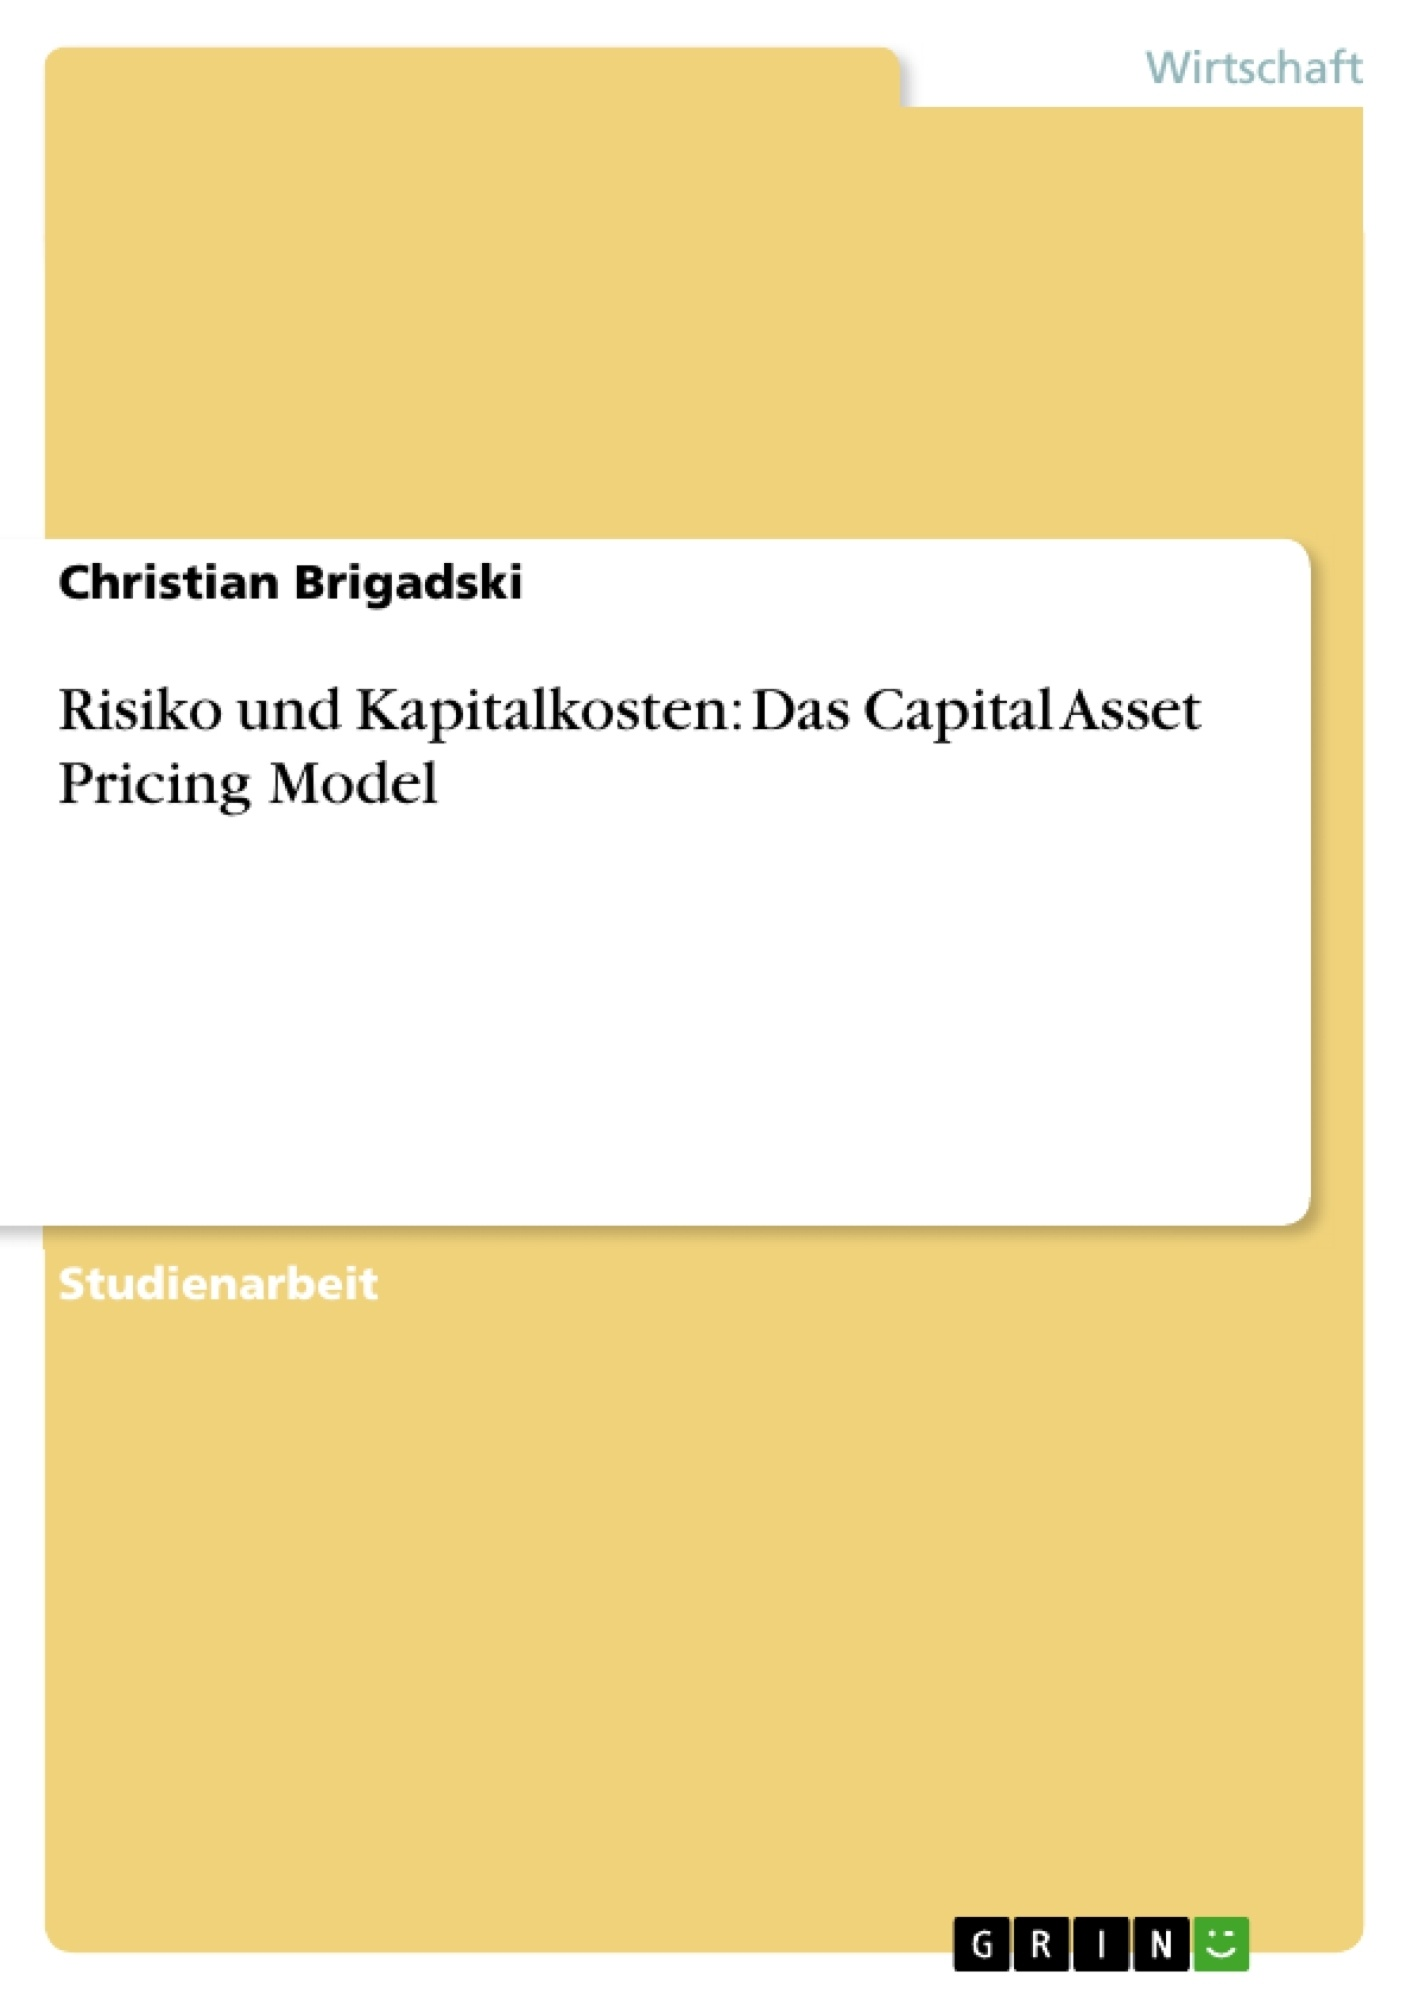 Titel: Risiko und Kapitalkosten: Das Capital Asset Pricing Model